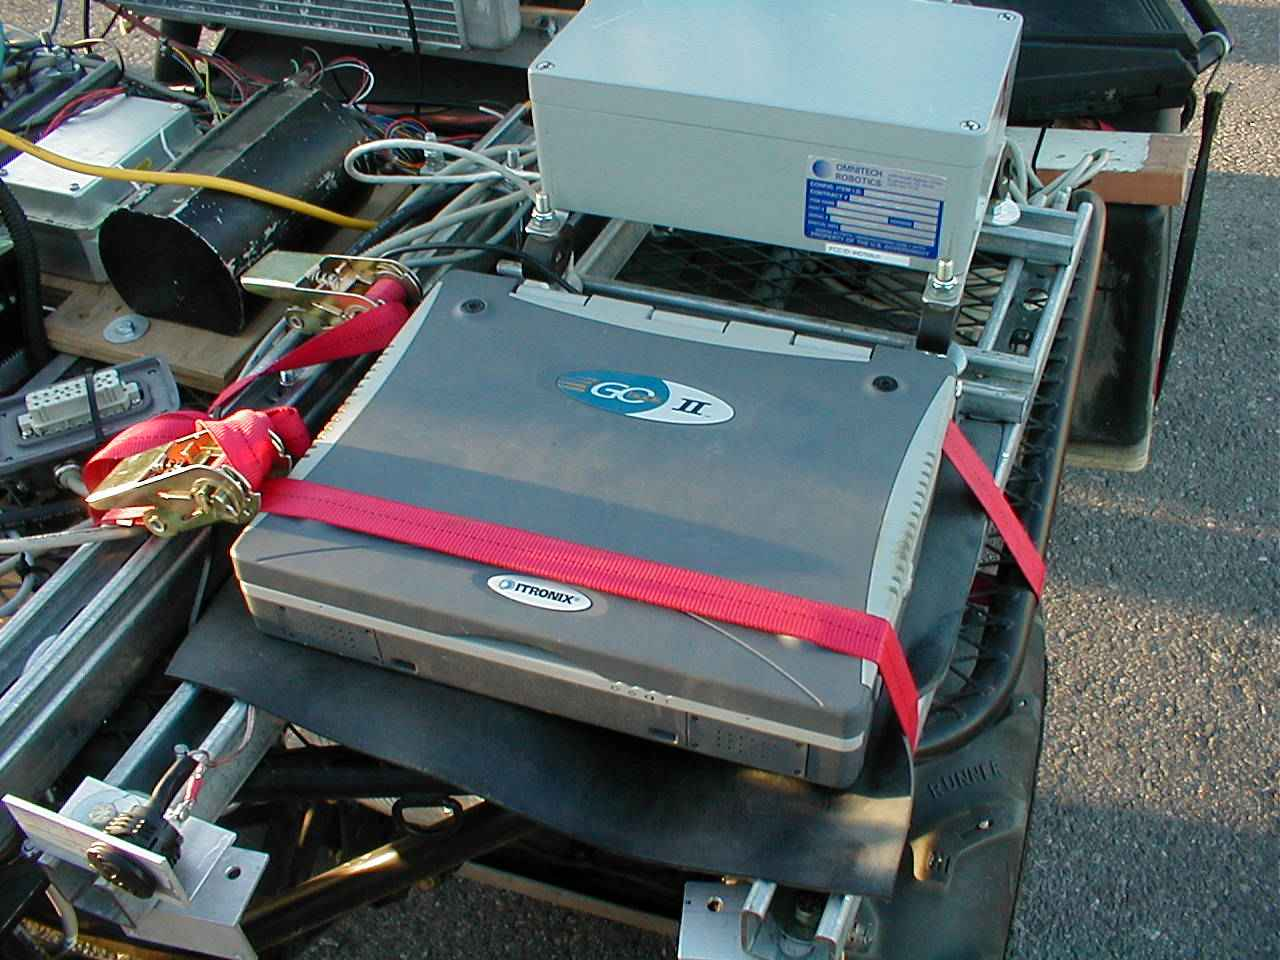 A few teams used hardened laptops for vehicle control. SciAutonics'